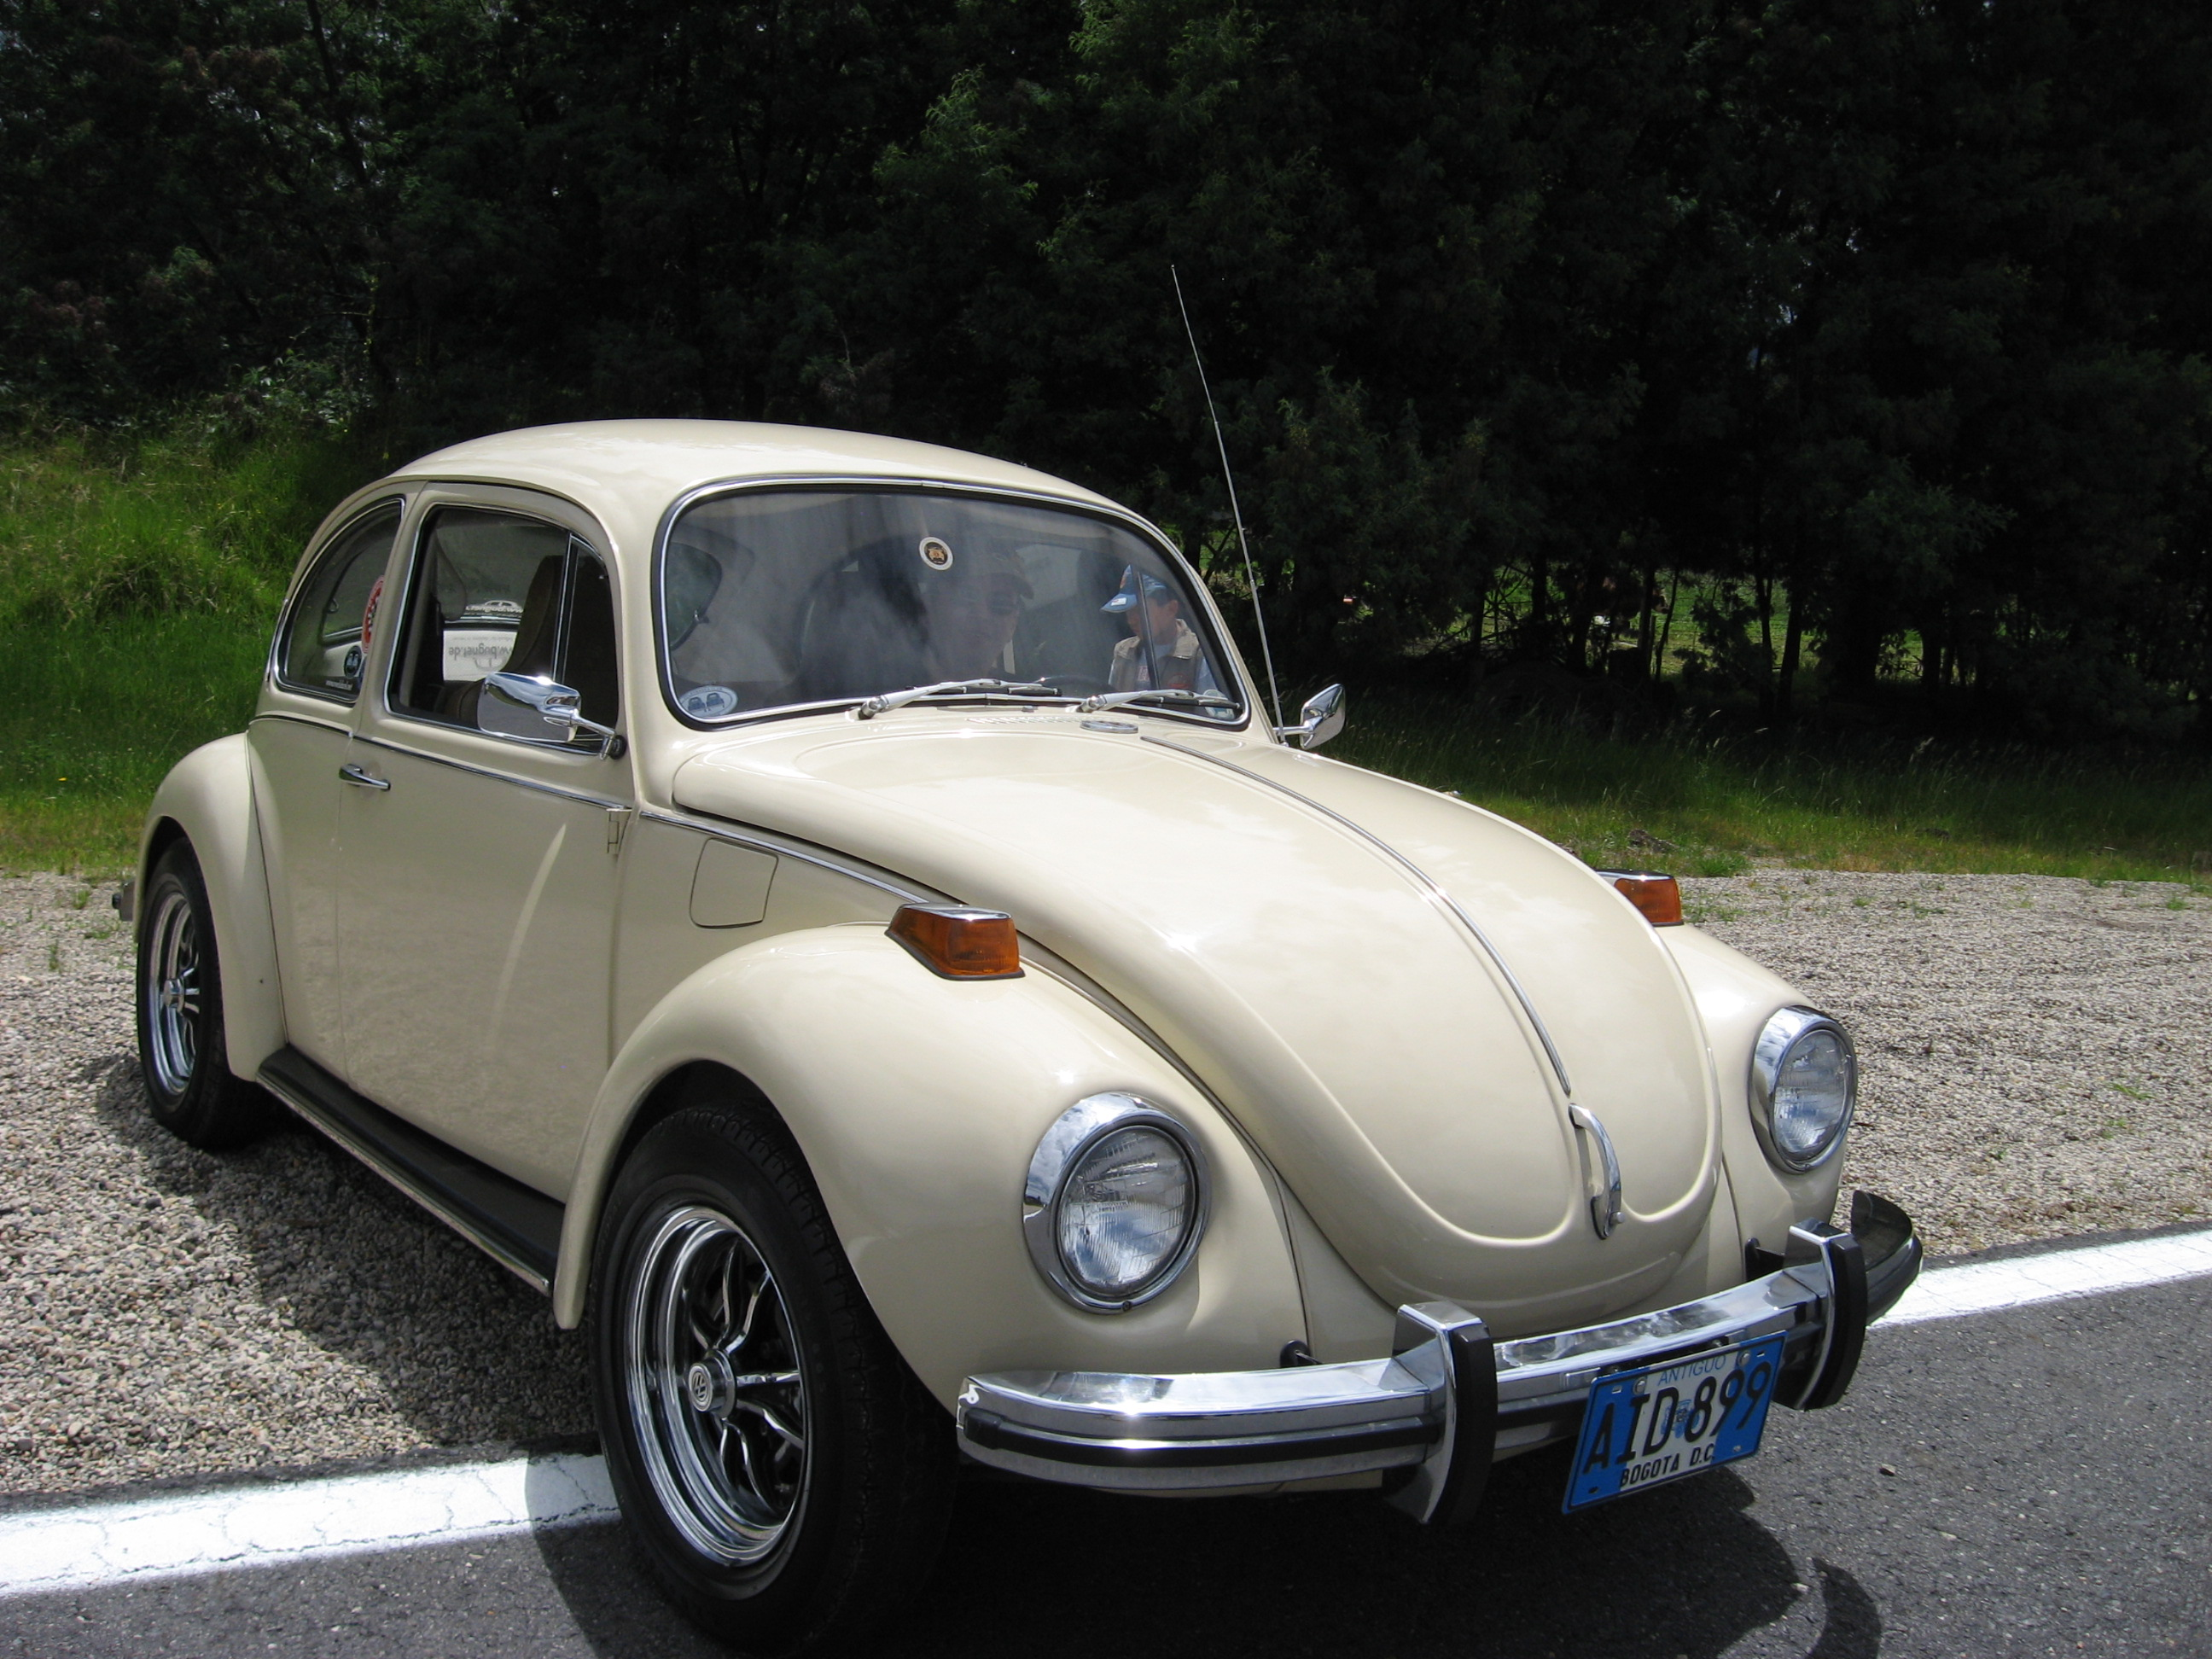 magazines ideas temple vw collection gardener for richard volkswagen sale by classic of and vintage cars auction colorful rolf car frieze craigslist beetle eddisons online